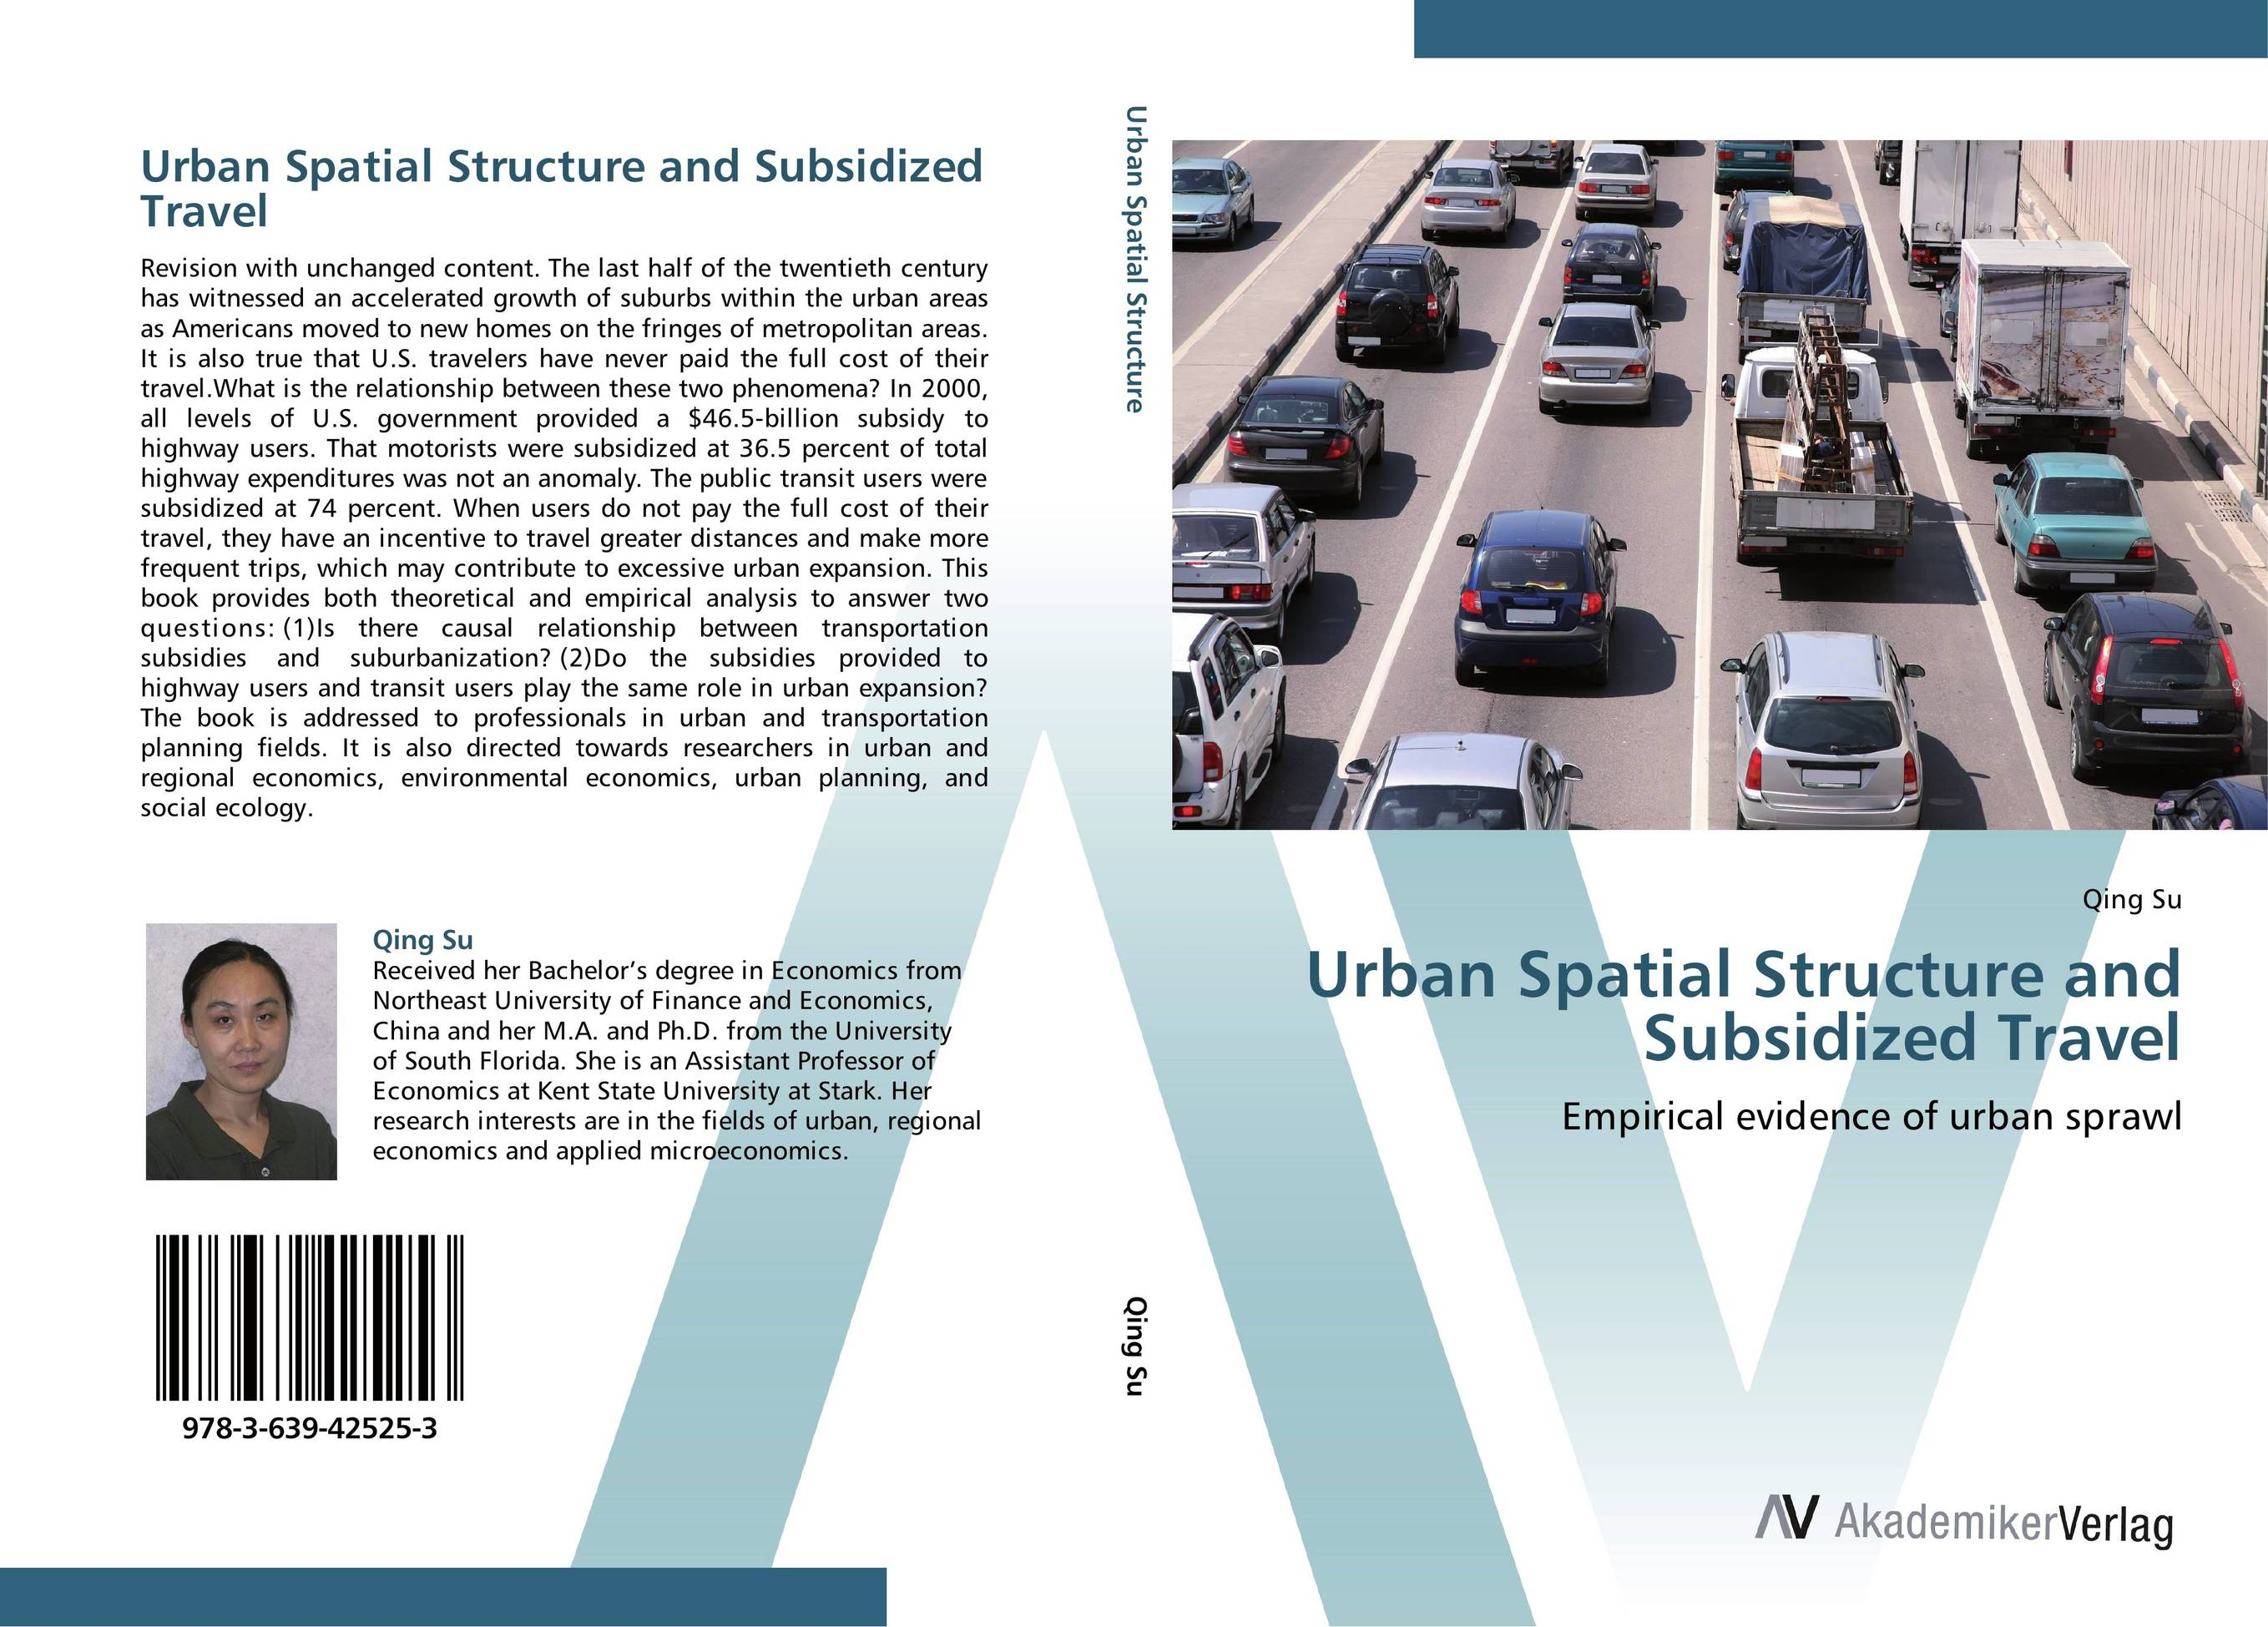 Urban Spatial Structure and Subsidized Travel